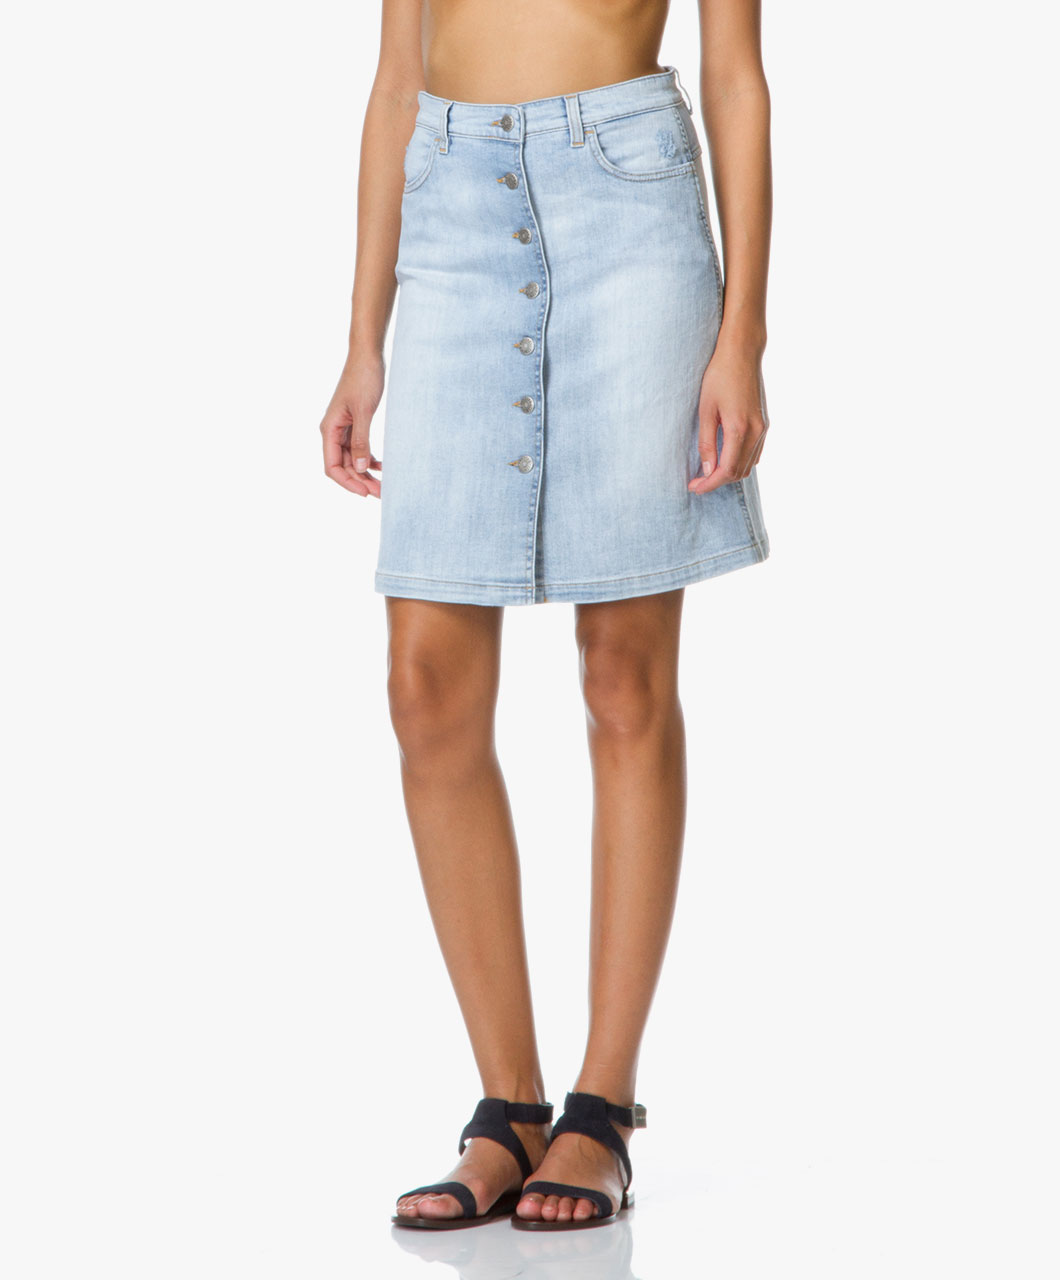 Closed Leah Denim Skirt - Pale Summer Blue - Closed